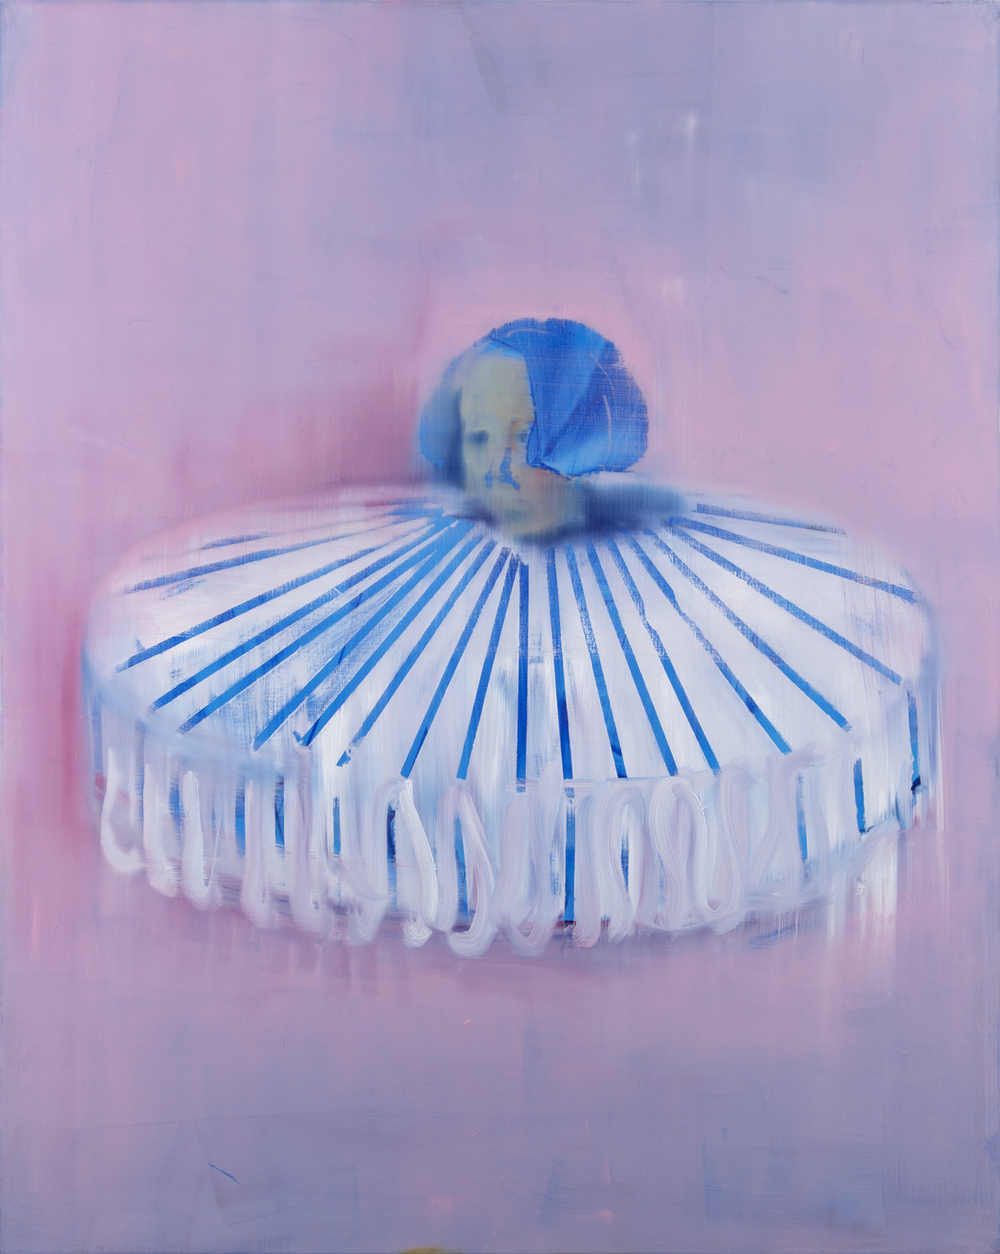 Big Collar with Blue Stripes, 2014